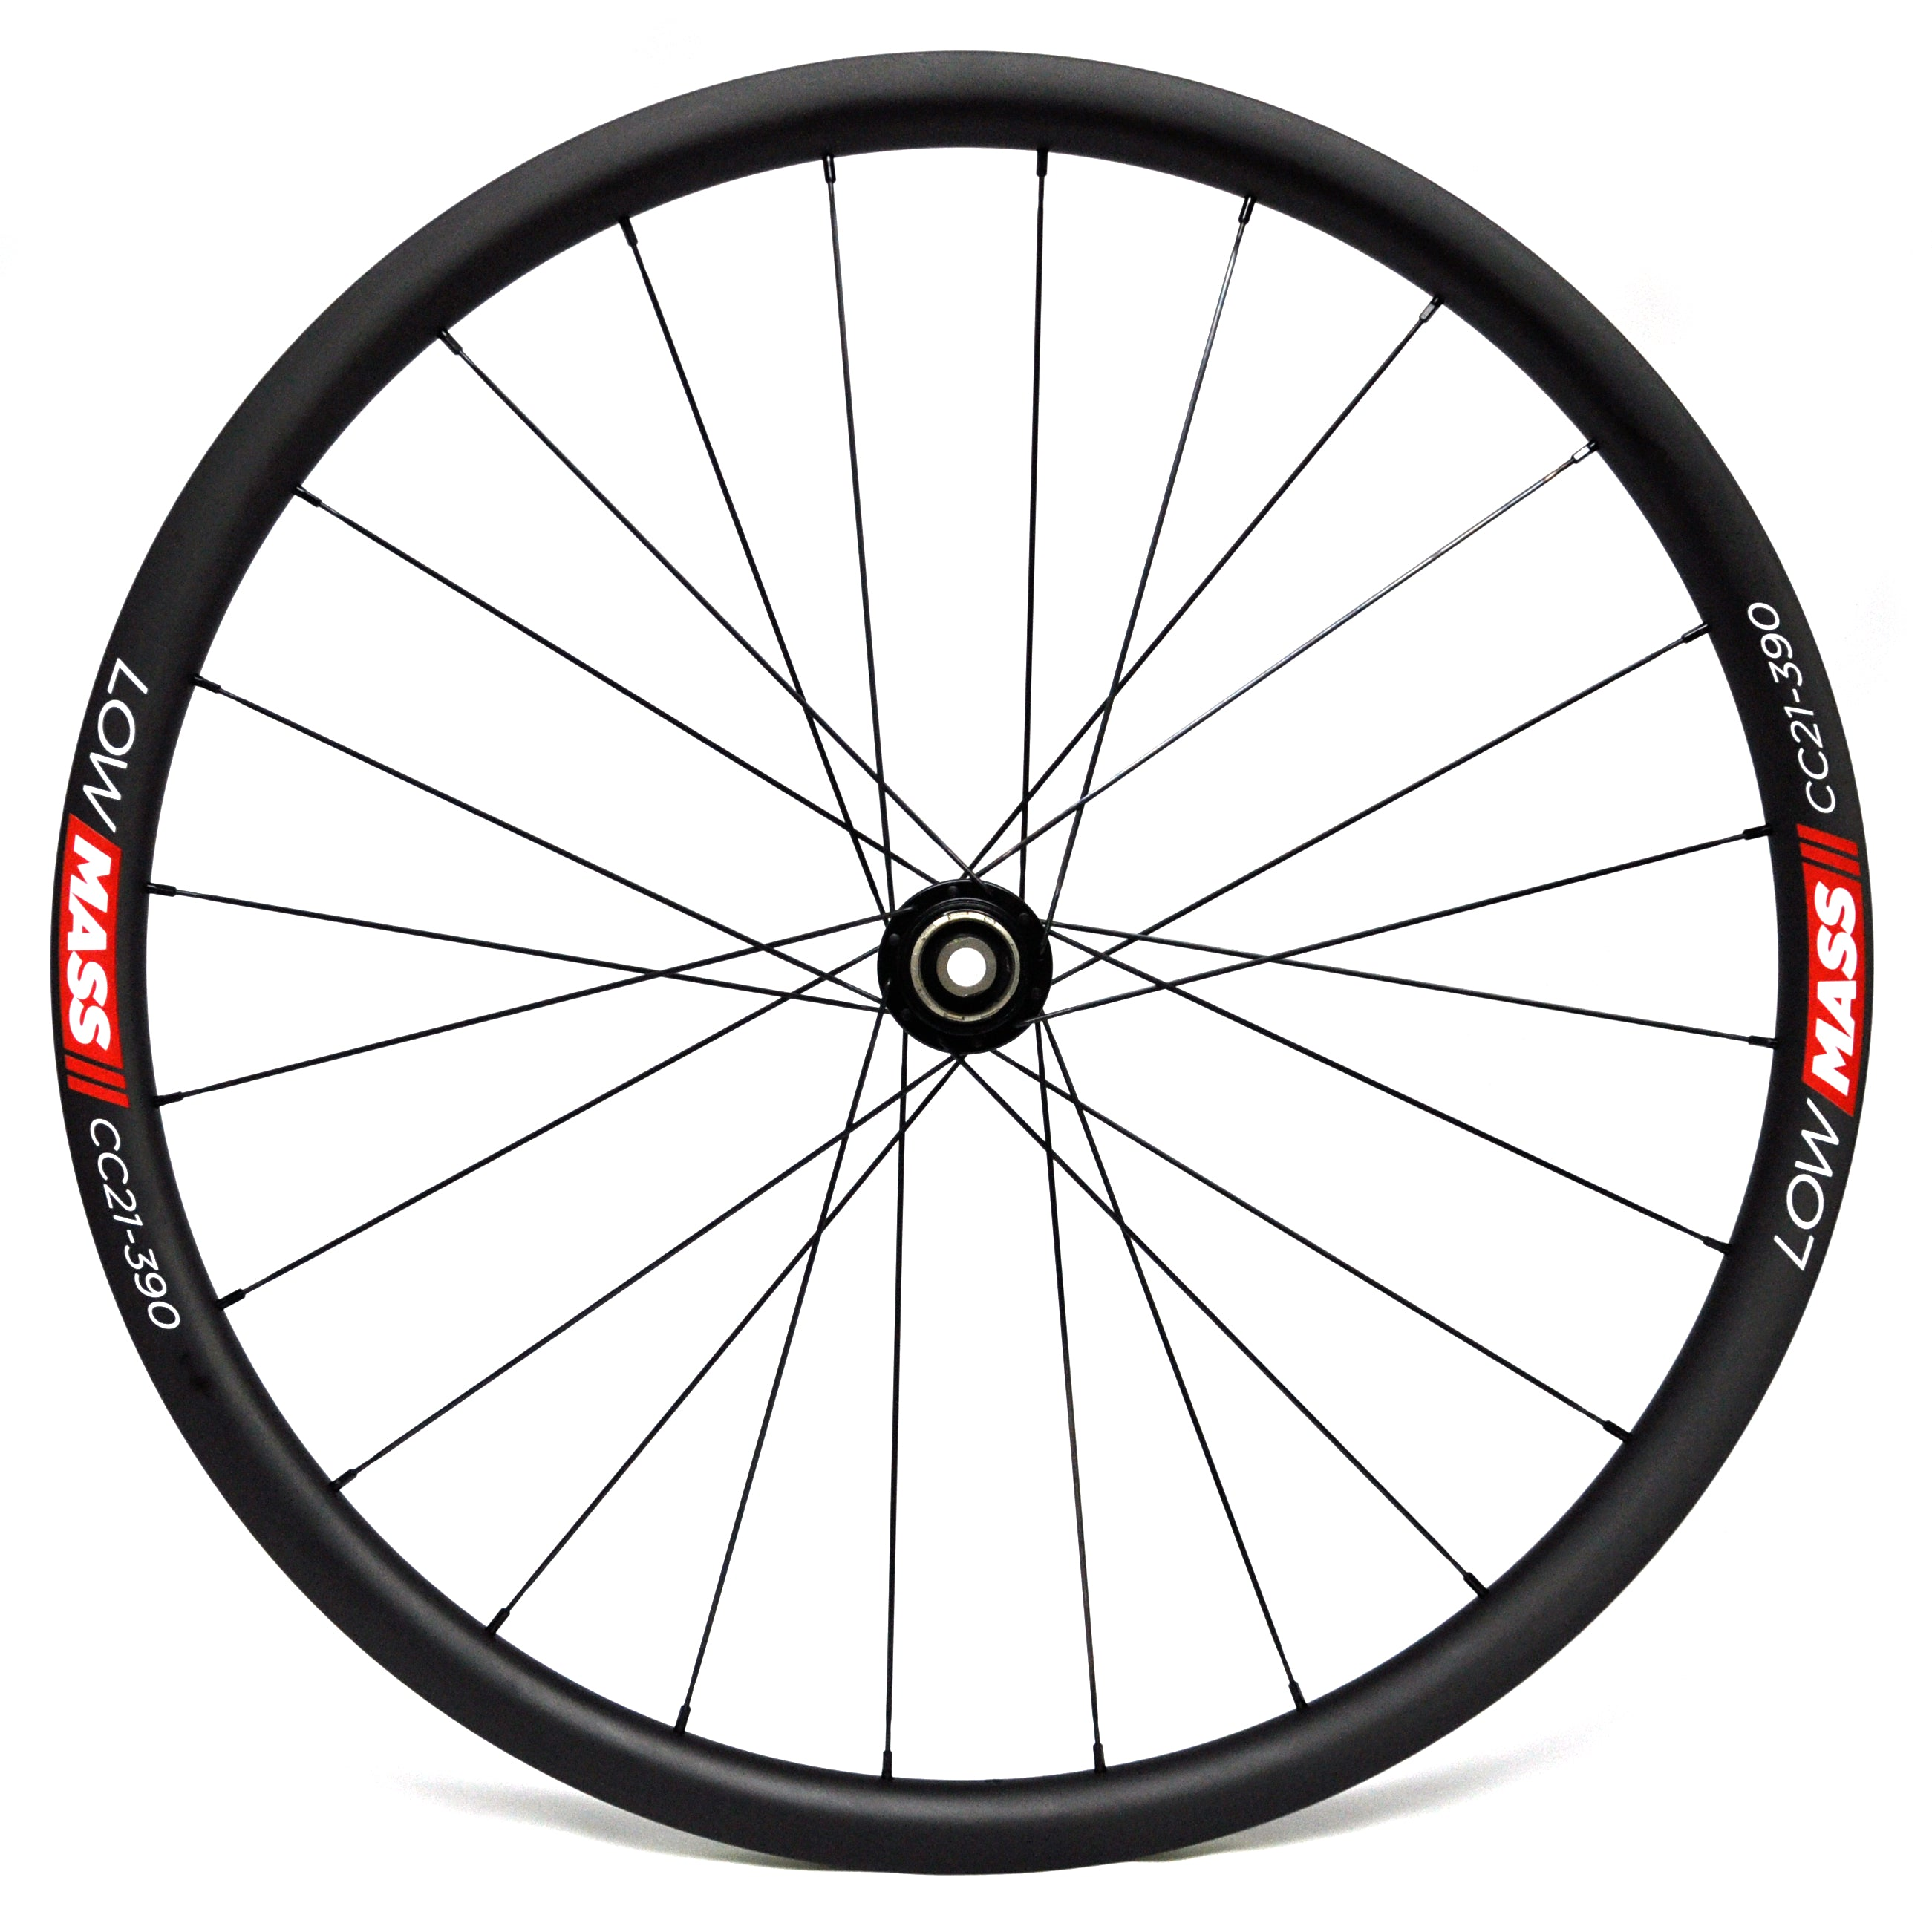 LOWMASS Multi-Purpose Carbon Tubeless Disc Wheelset